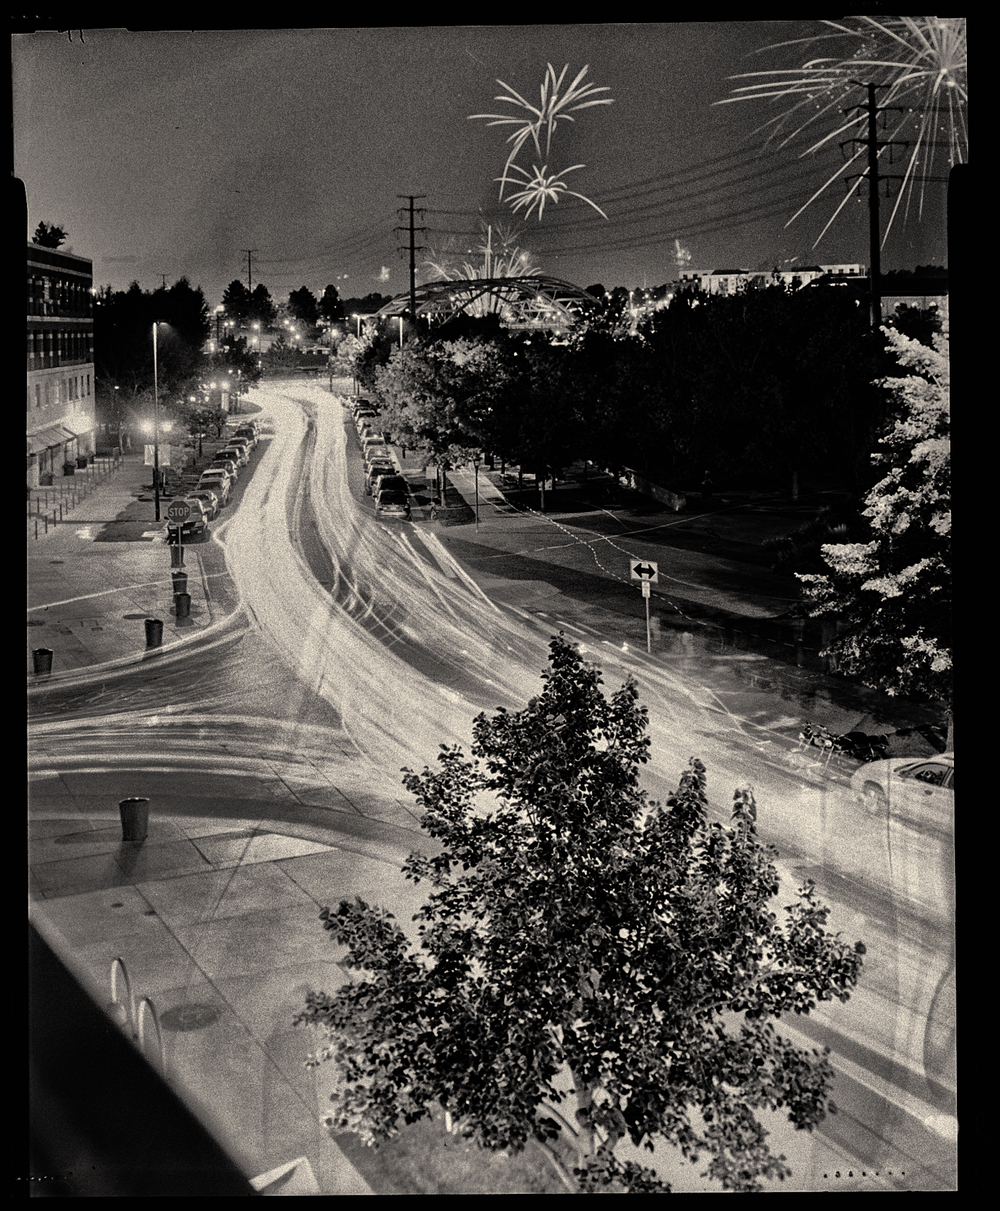 "©Matt Hill 4x5"" 4-minute exposure shot with MeFOTO Backpacker"